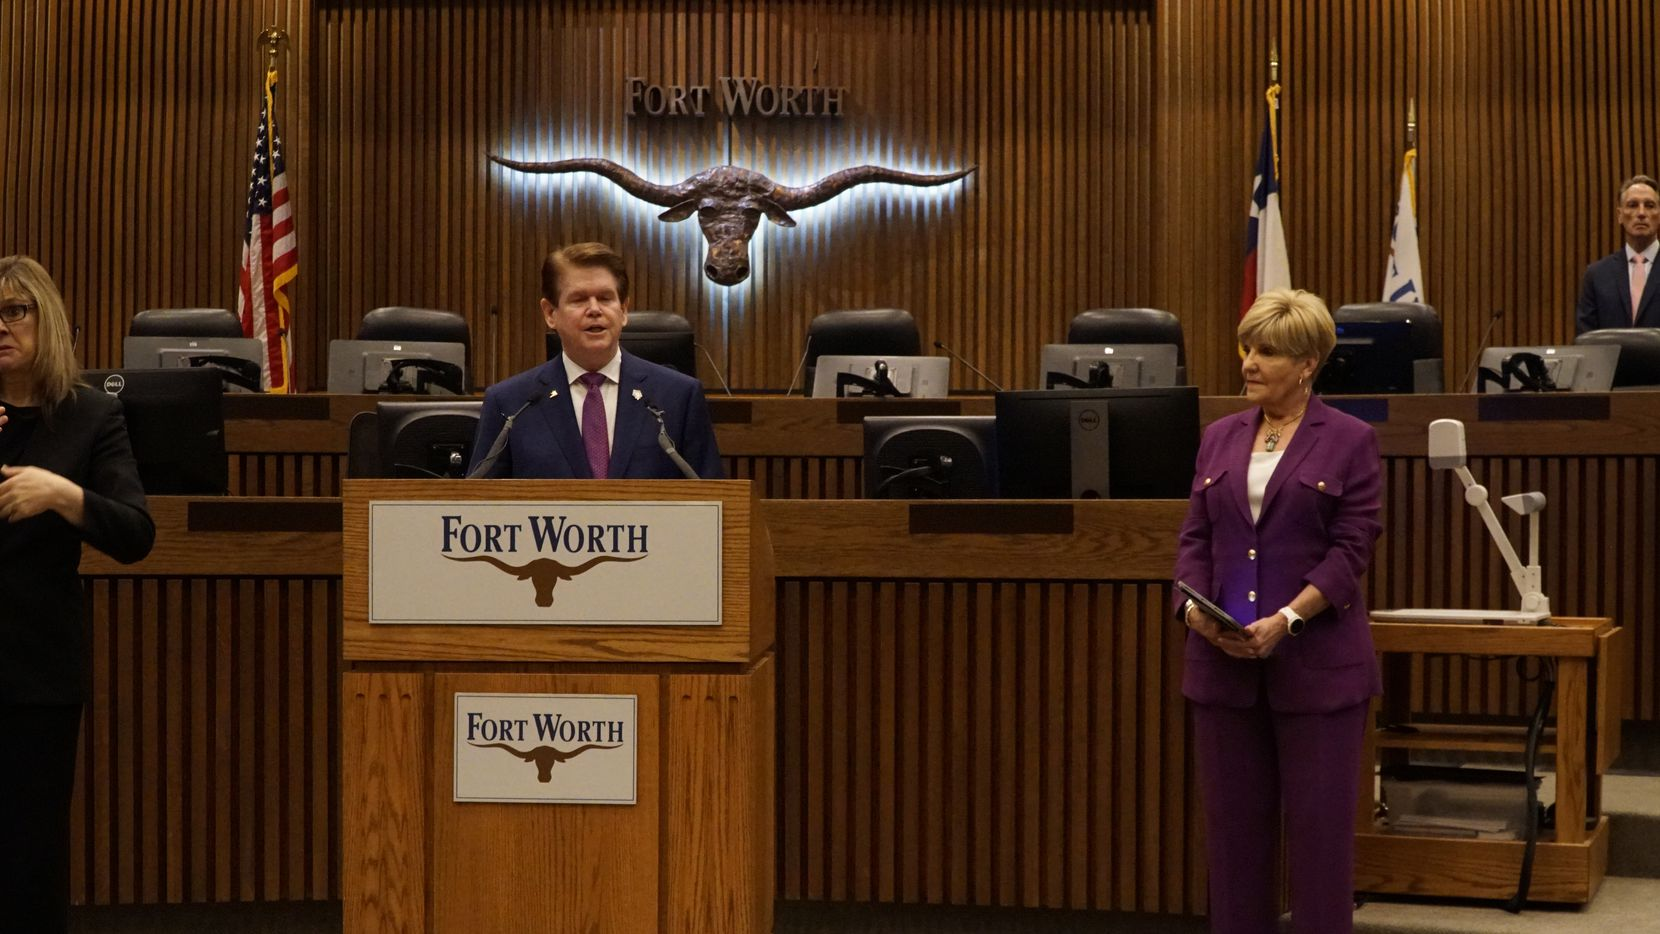 Arlington Mayor Jeff Williams asked the residents of his city to stay at home during a news conference at City Hall in Fort Worth, TX on Tuesday, March 24, 2020.